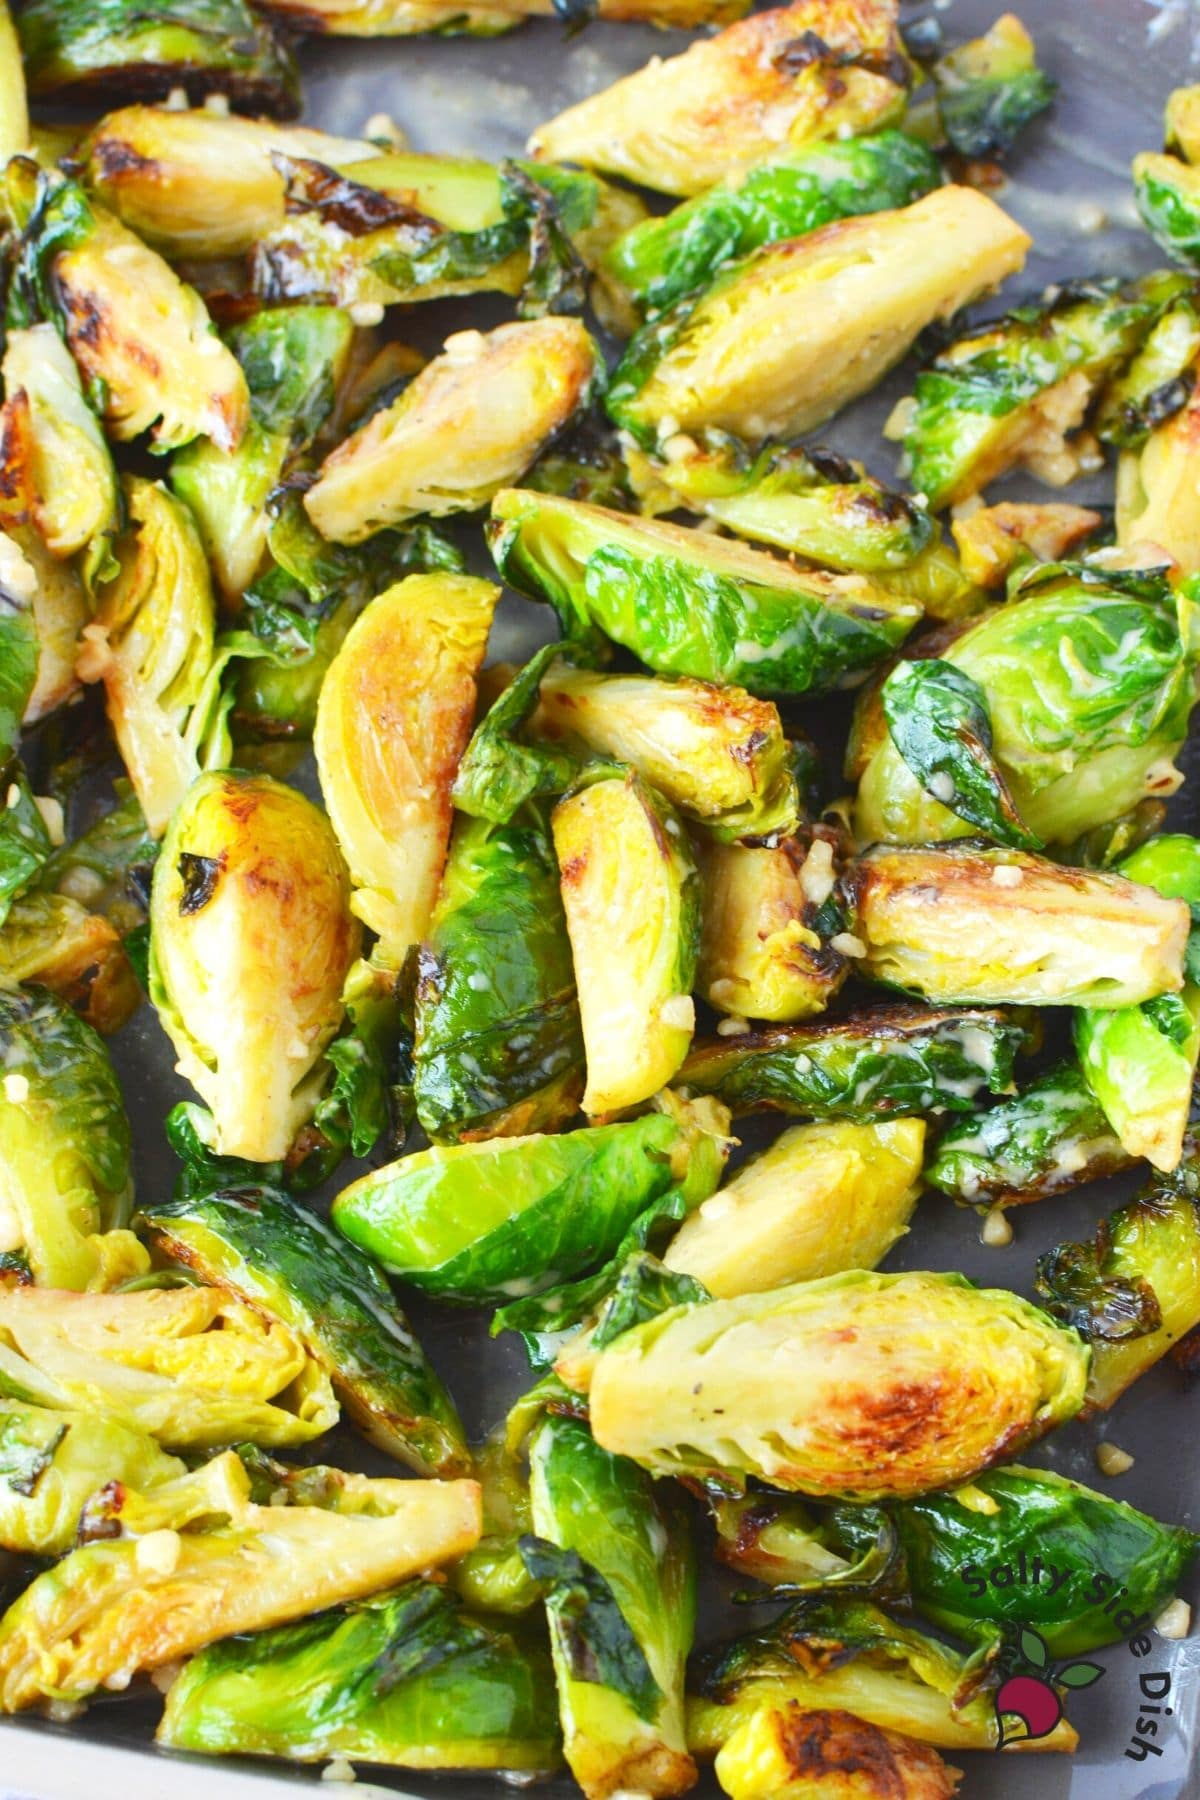 brussels sprouts with panko crumbs in pan